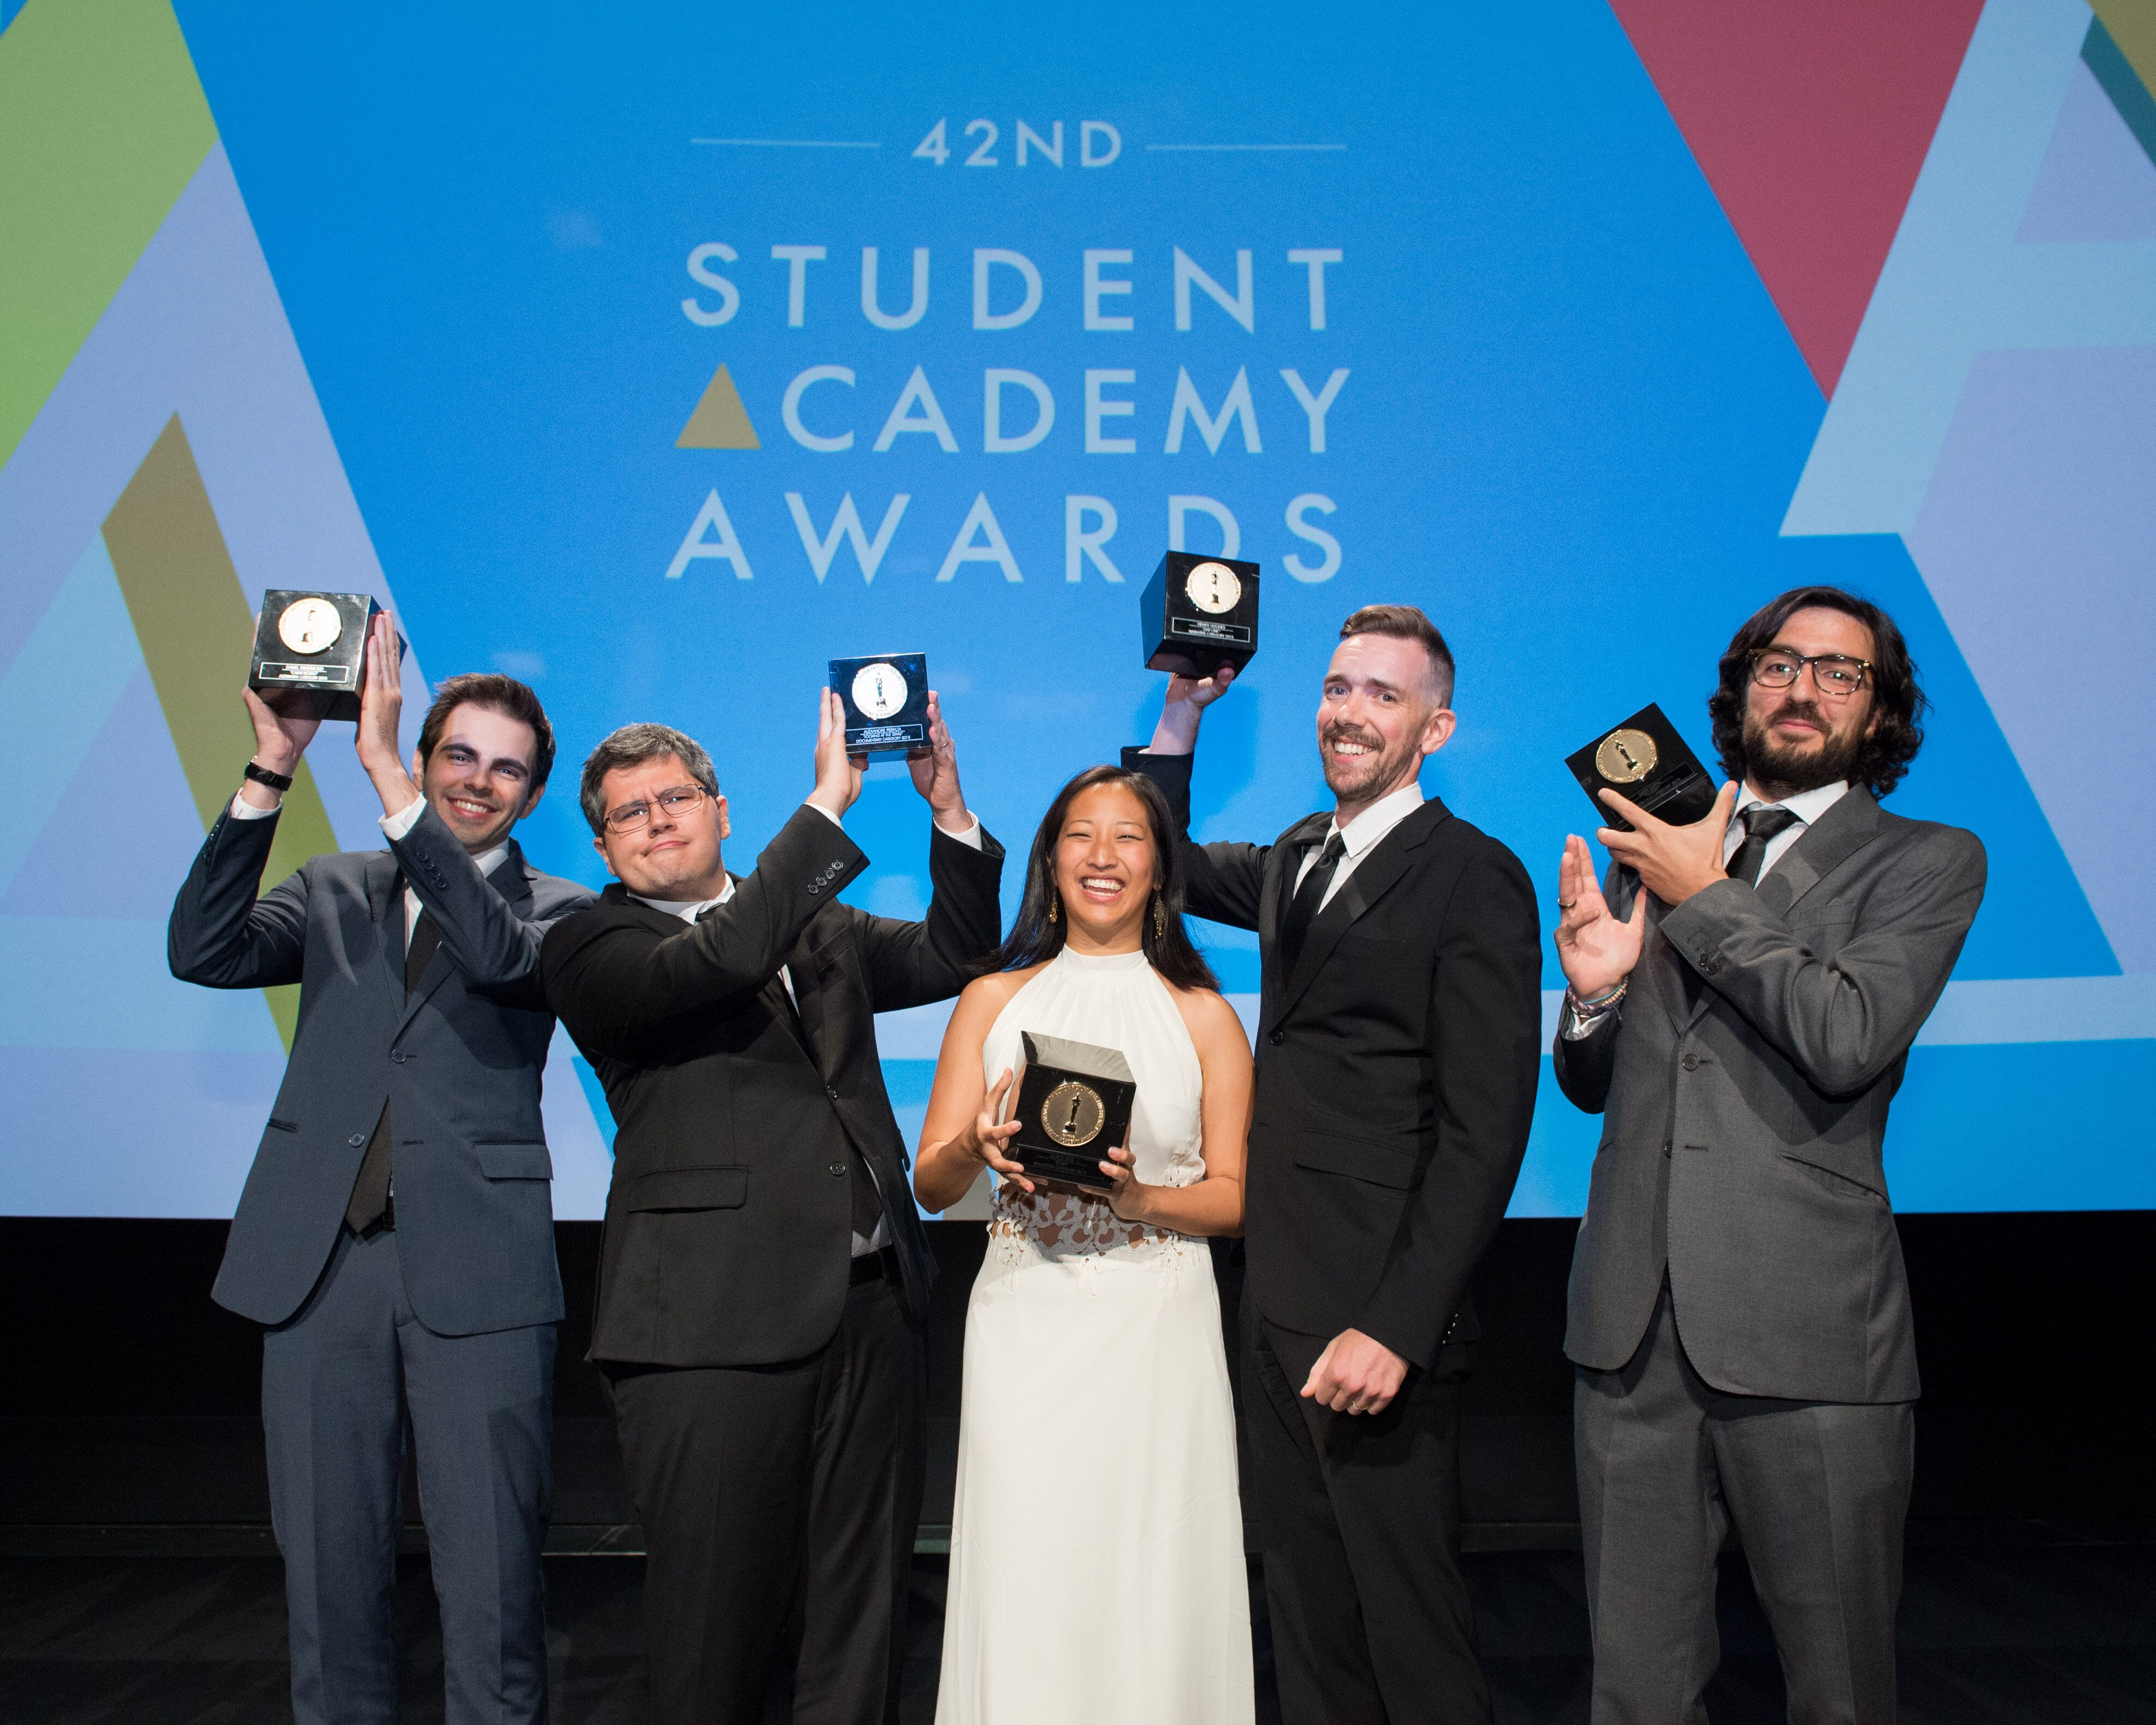 2015 Student Academy Awards Gold Medalists